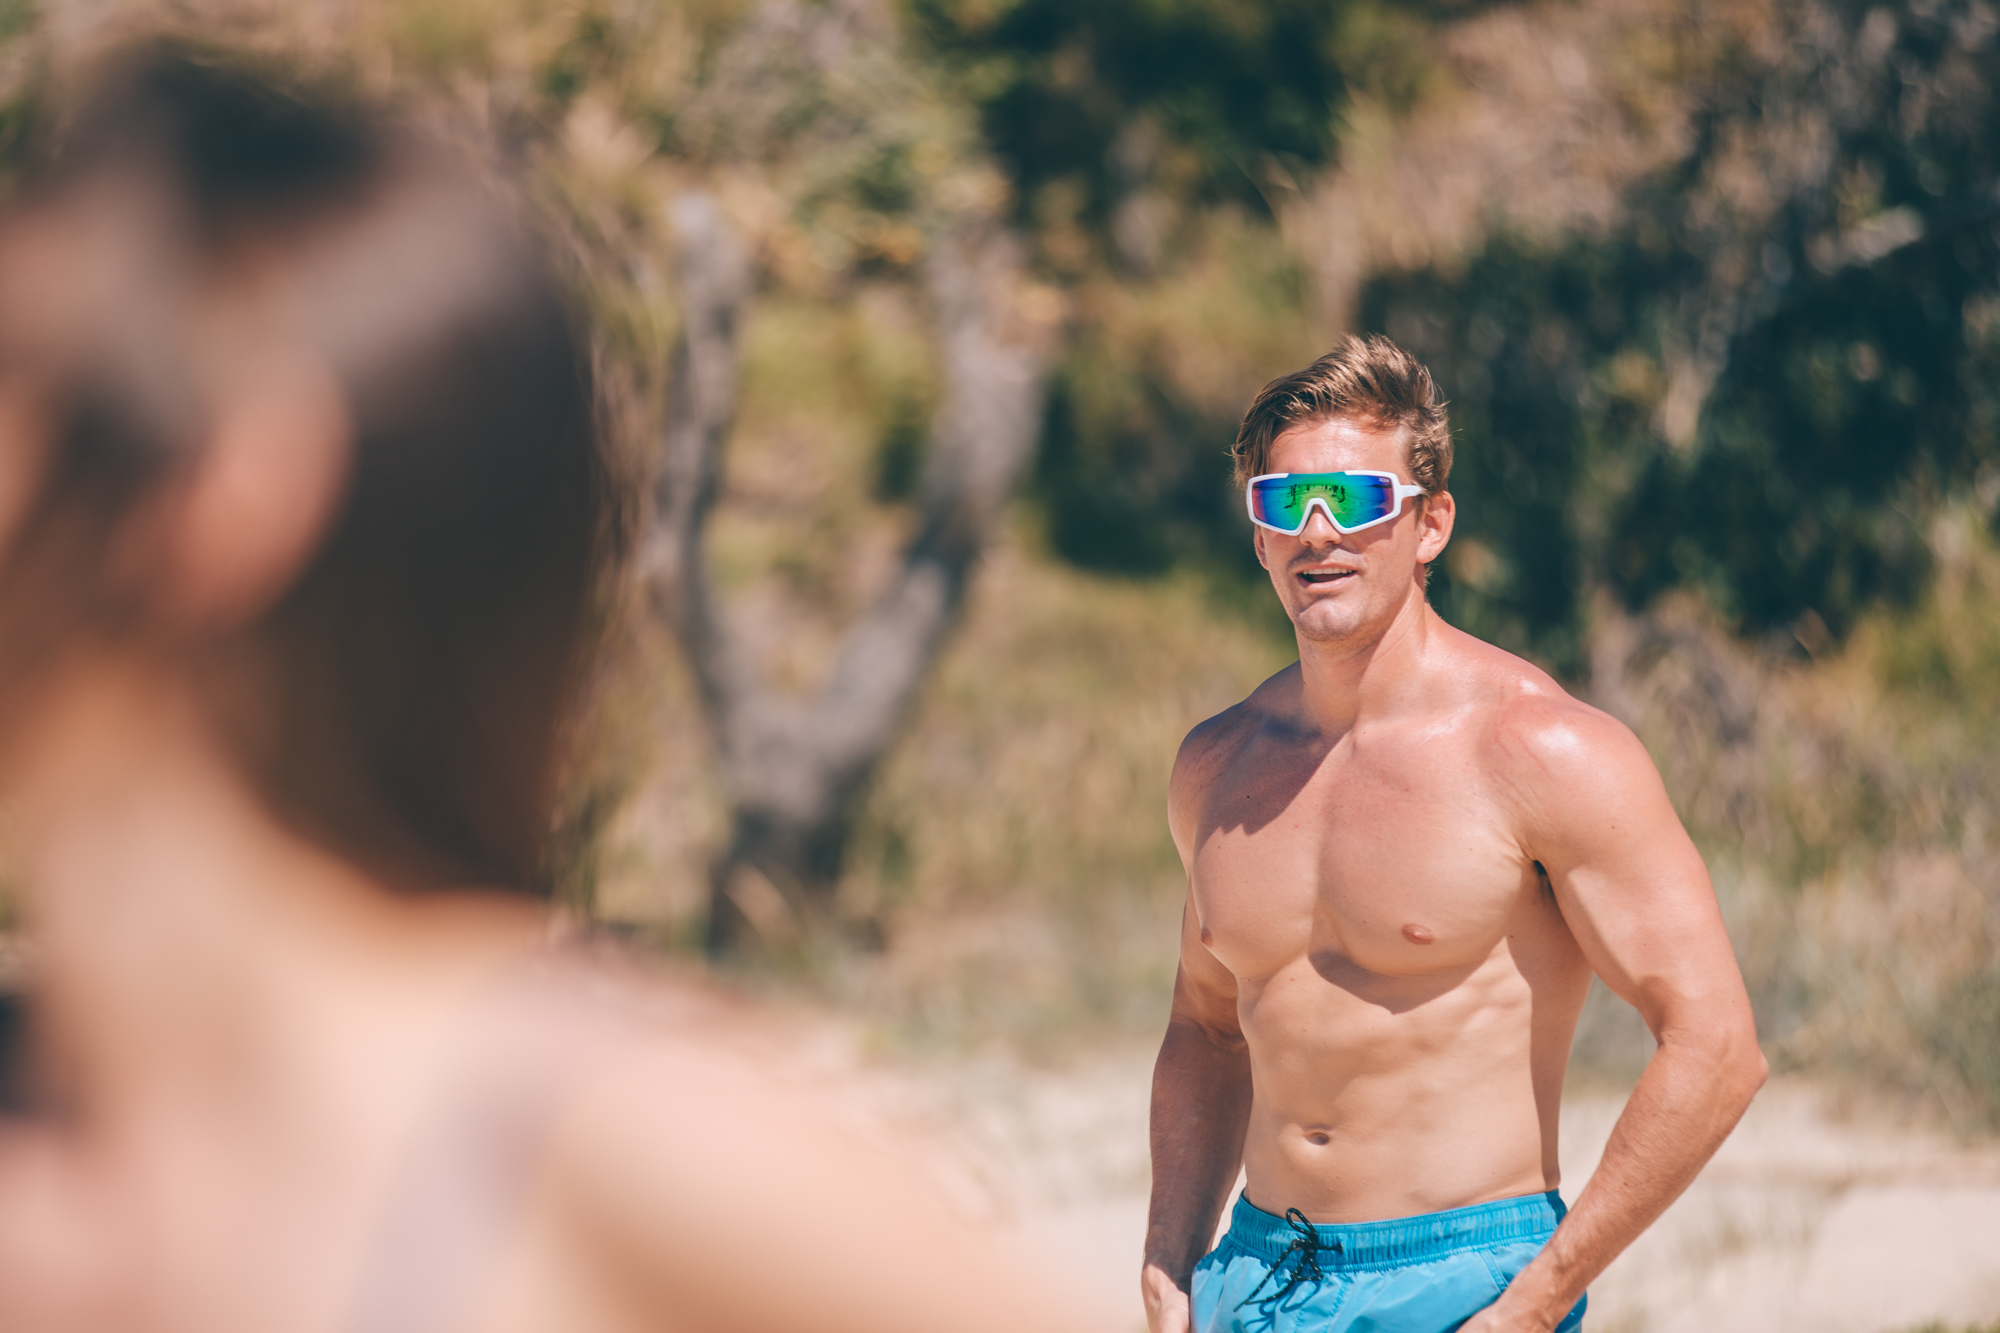 Soda Shades of Summer Eyewear Sunglasses Welcome to Summer Campaign Polarized Australia-60